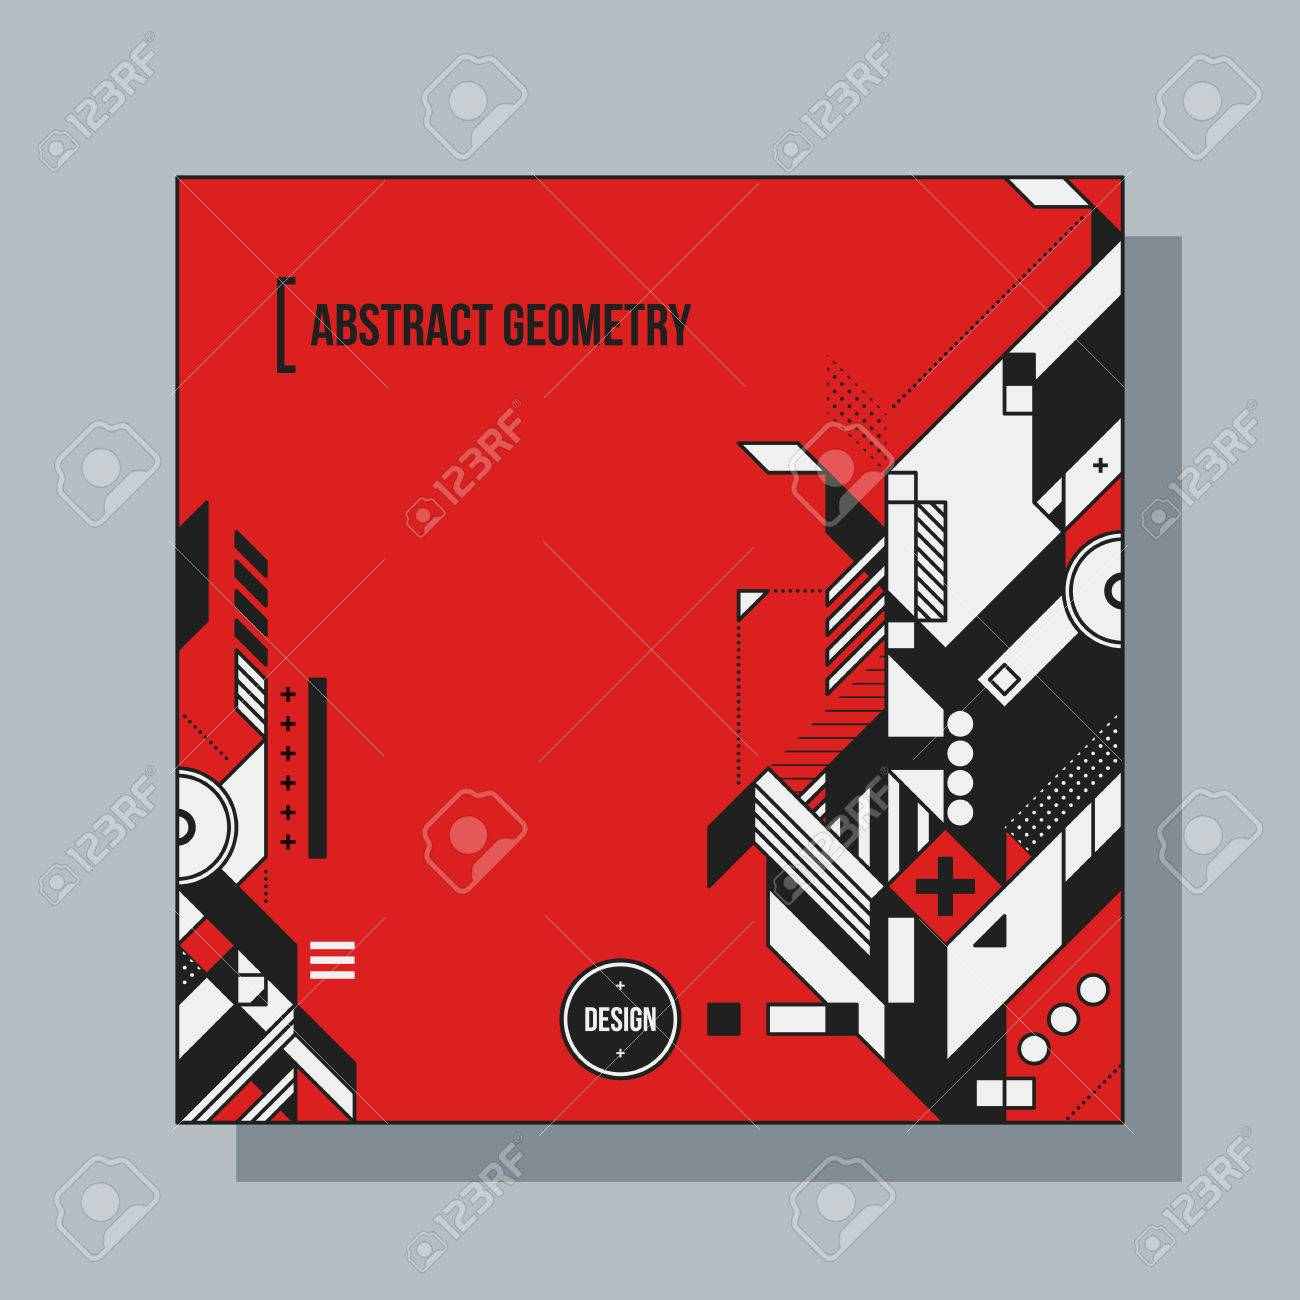 Square background design template with abstract geometric elements